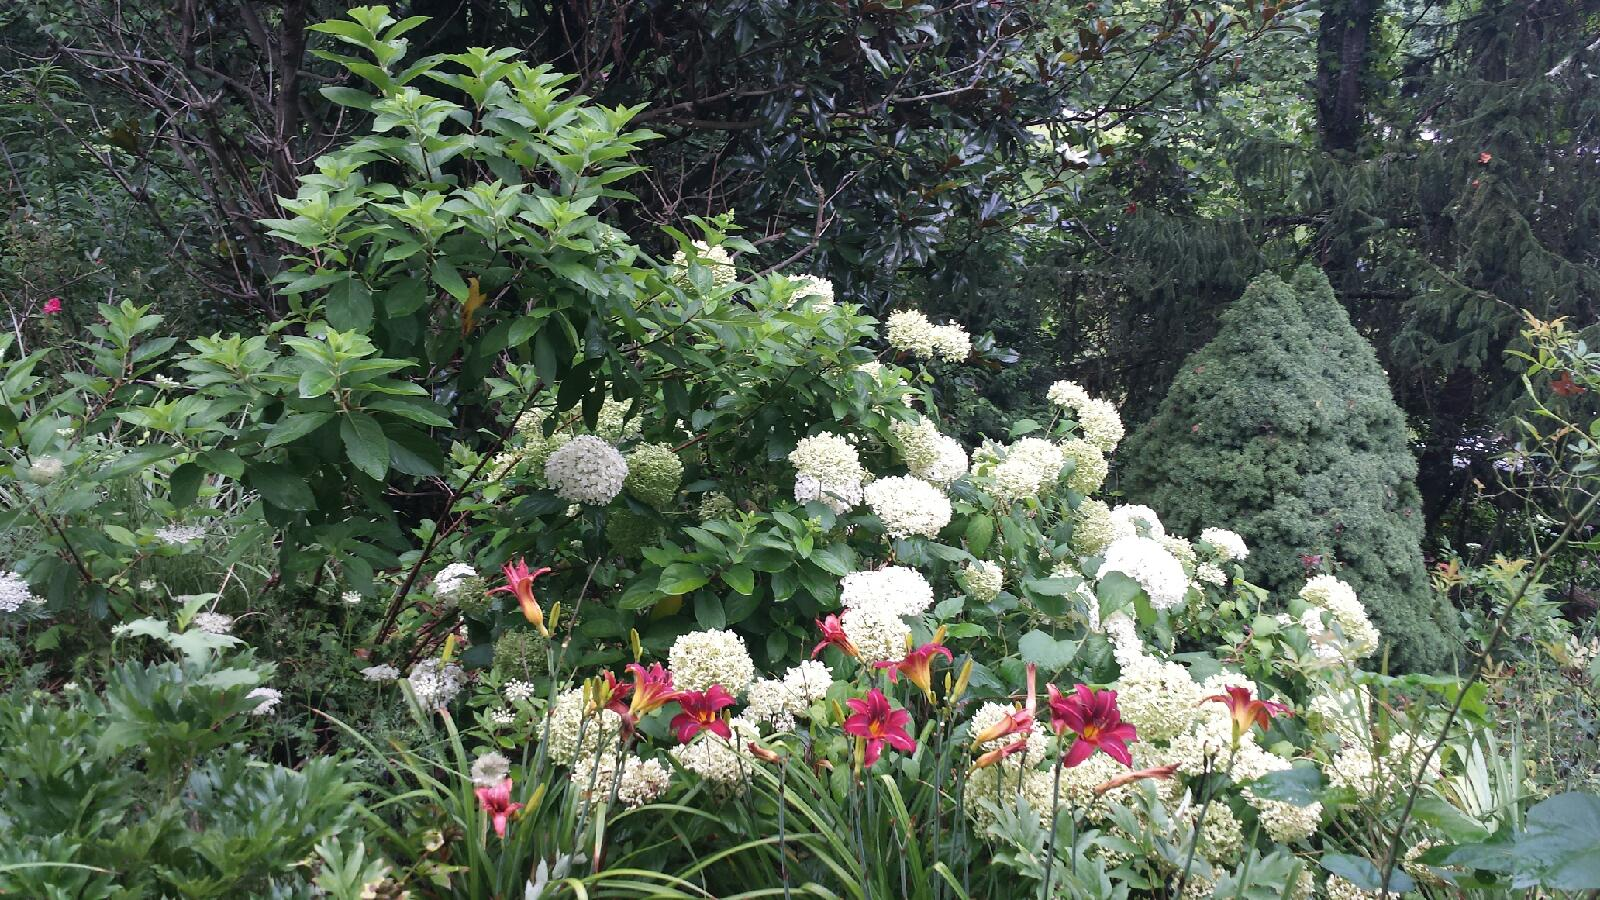 'Limelight' hydrangea with burgundy-red daylilies and Alberta spruce in the background create a perfect layered look in the garden without sacrificing flowers.